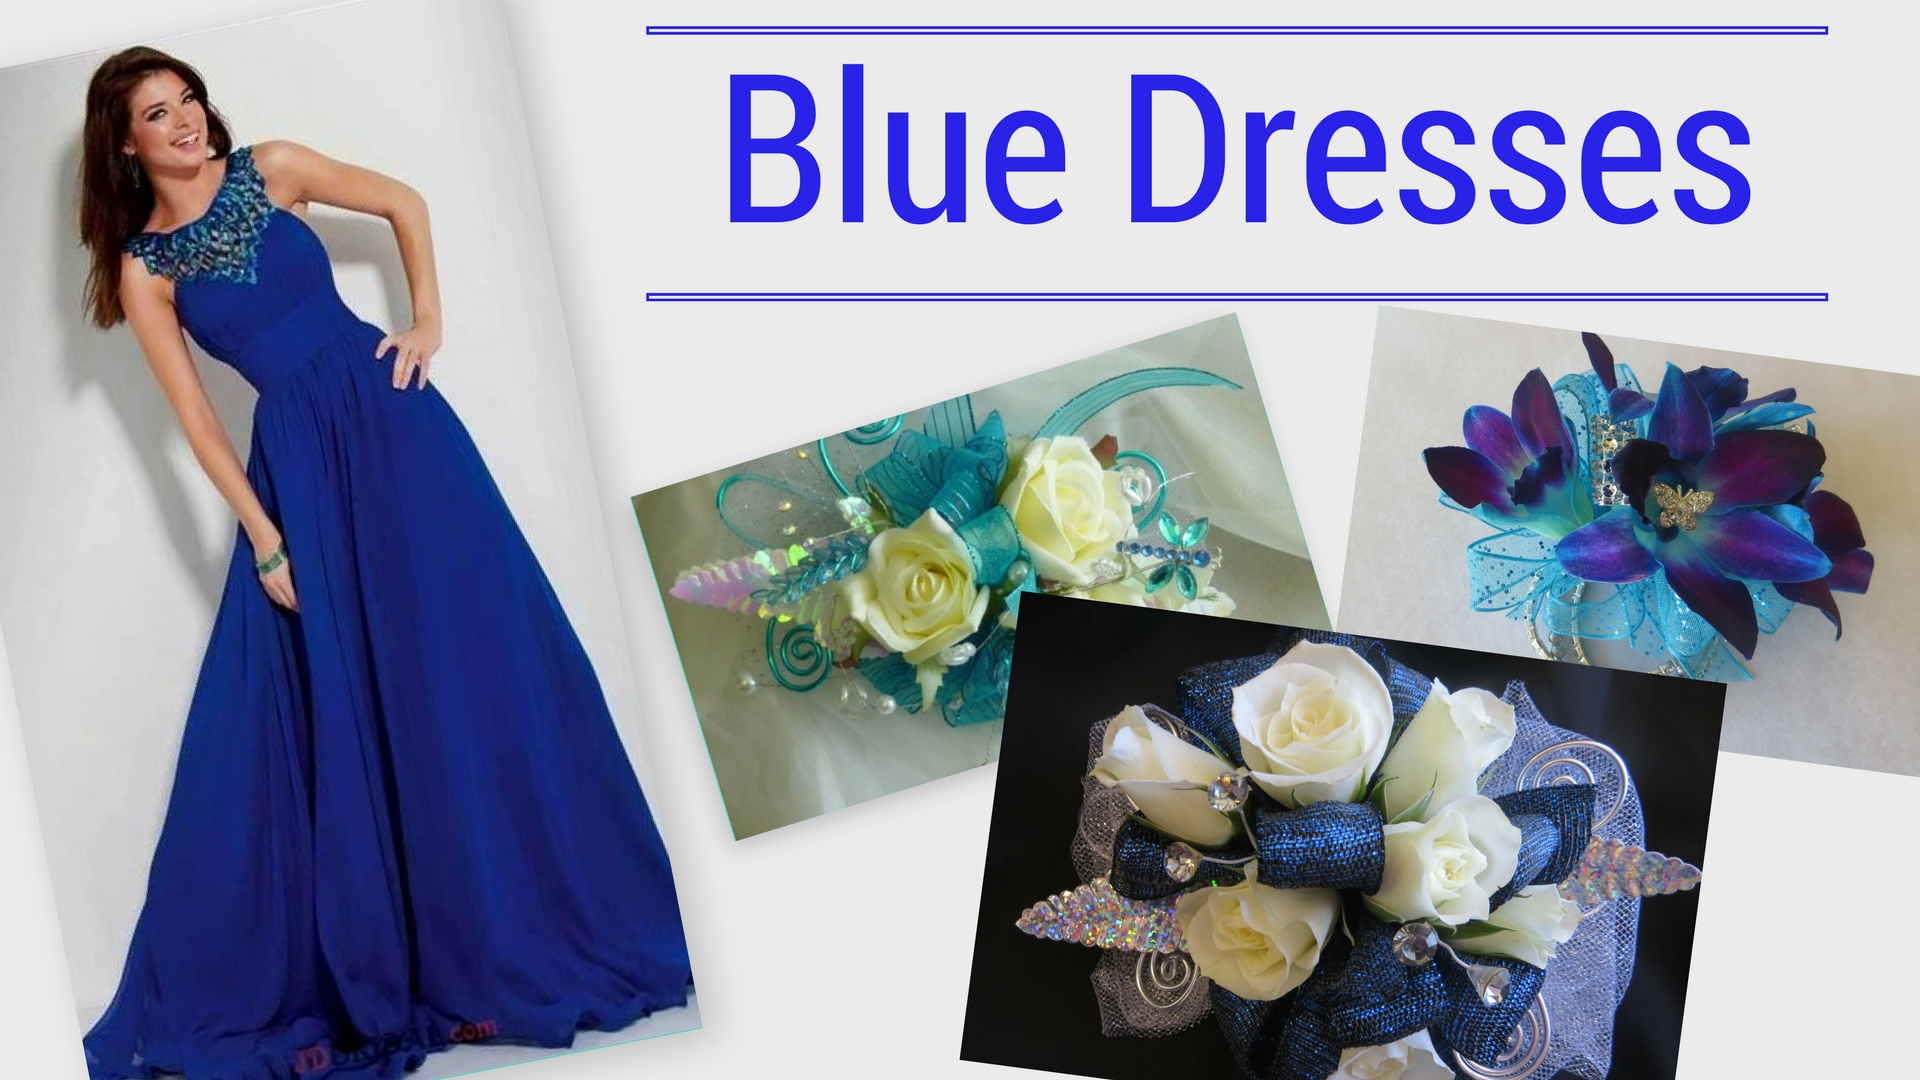 Prom 2018 Trends prom corsage near me flower shop in pasadena tx blue dress